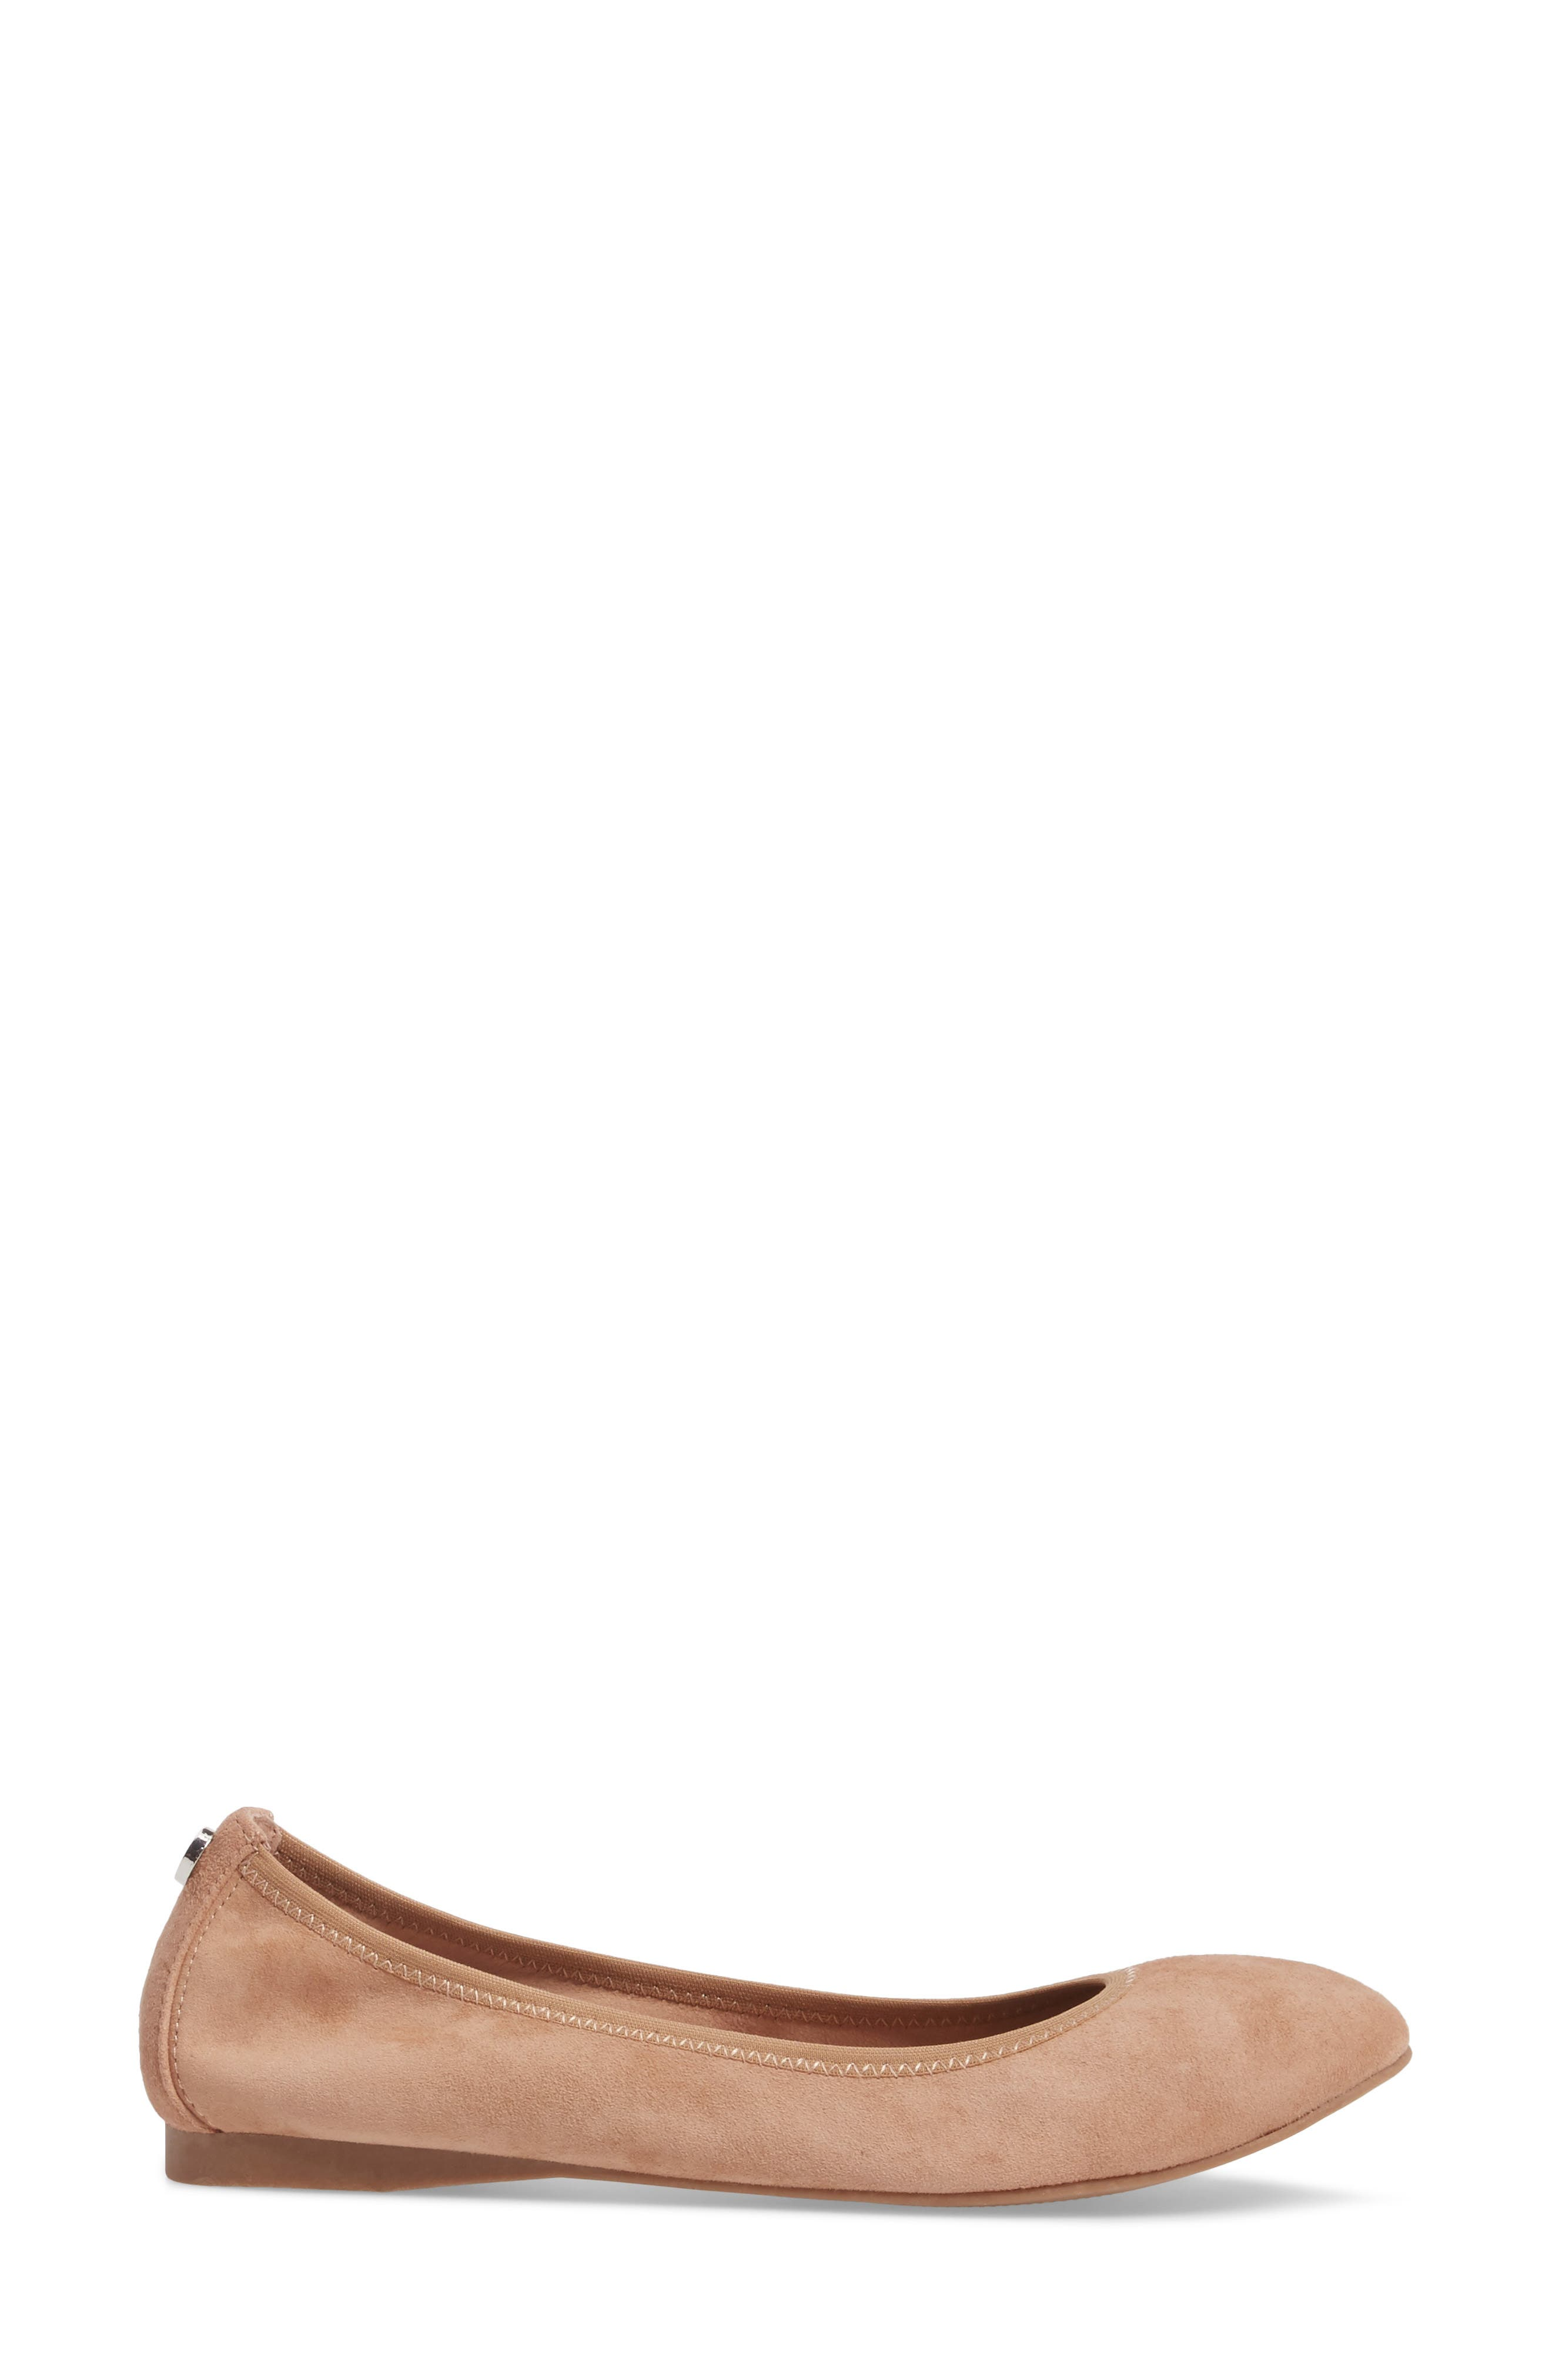 Alternate Image 3  - Steve Madden Bonnie Ballet Flat (Women)